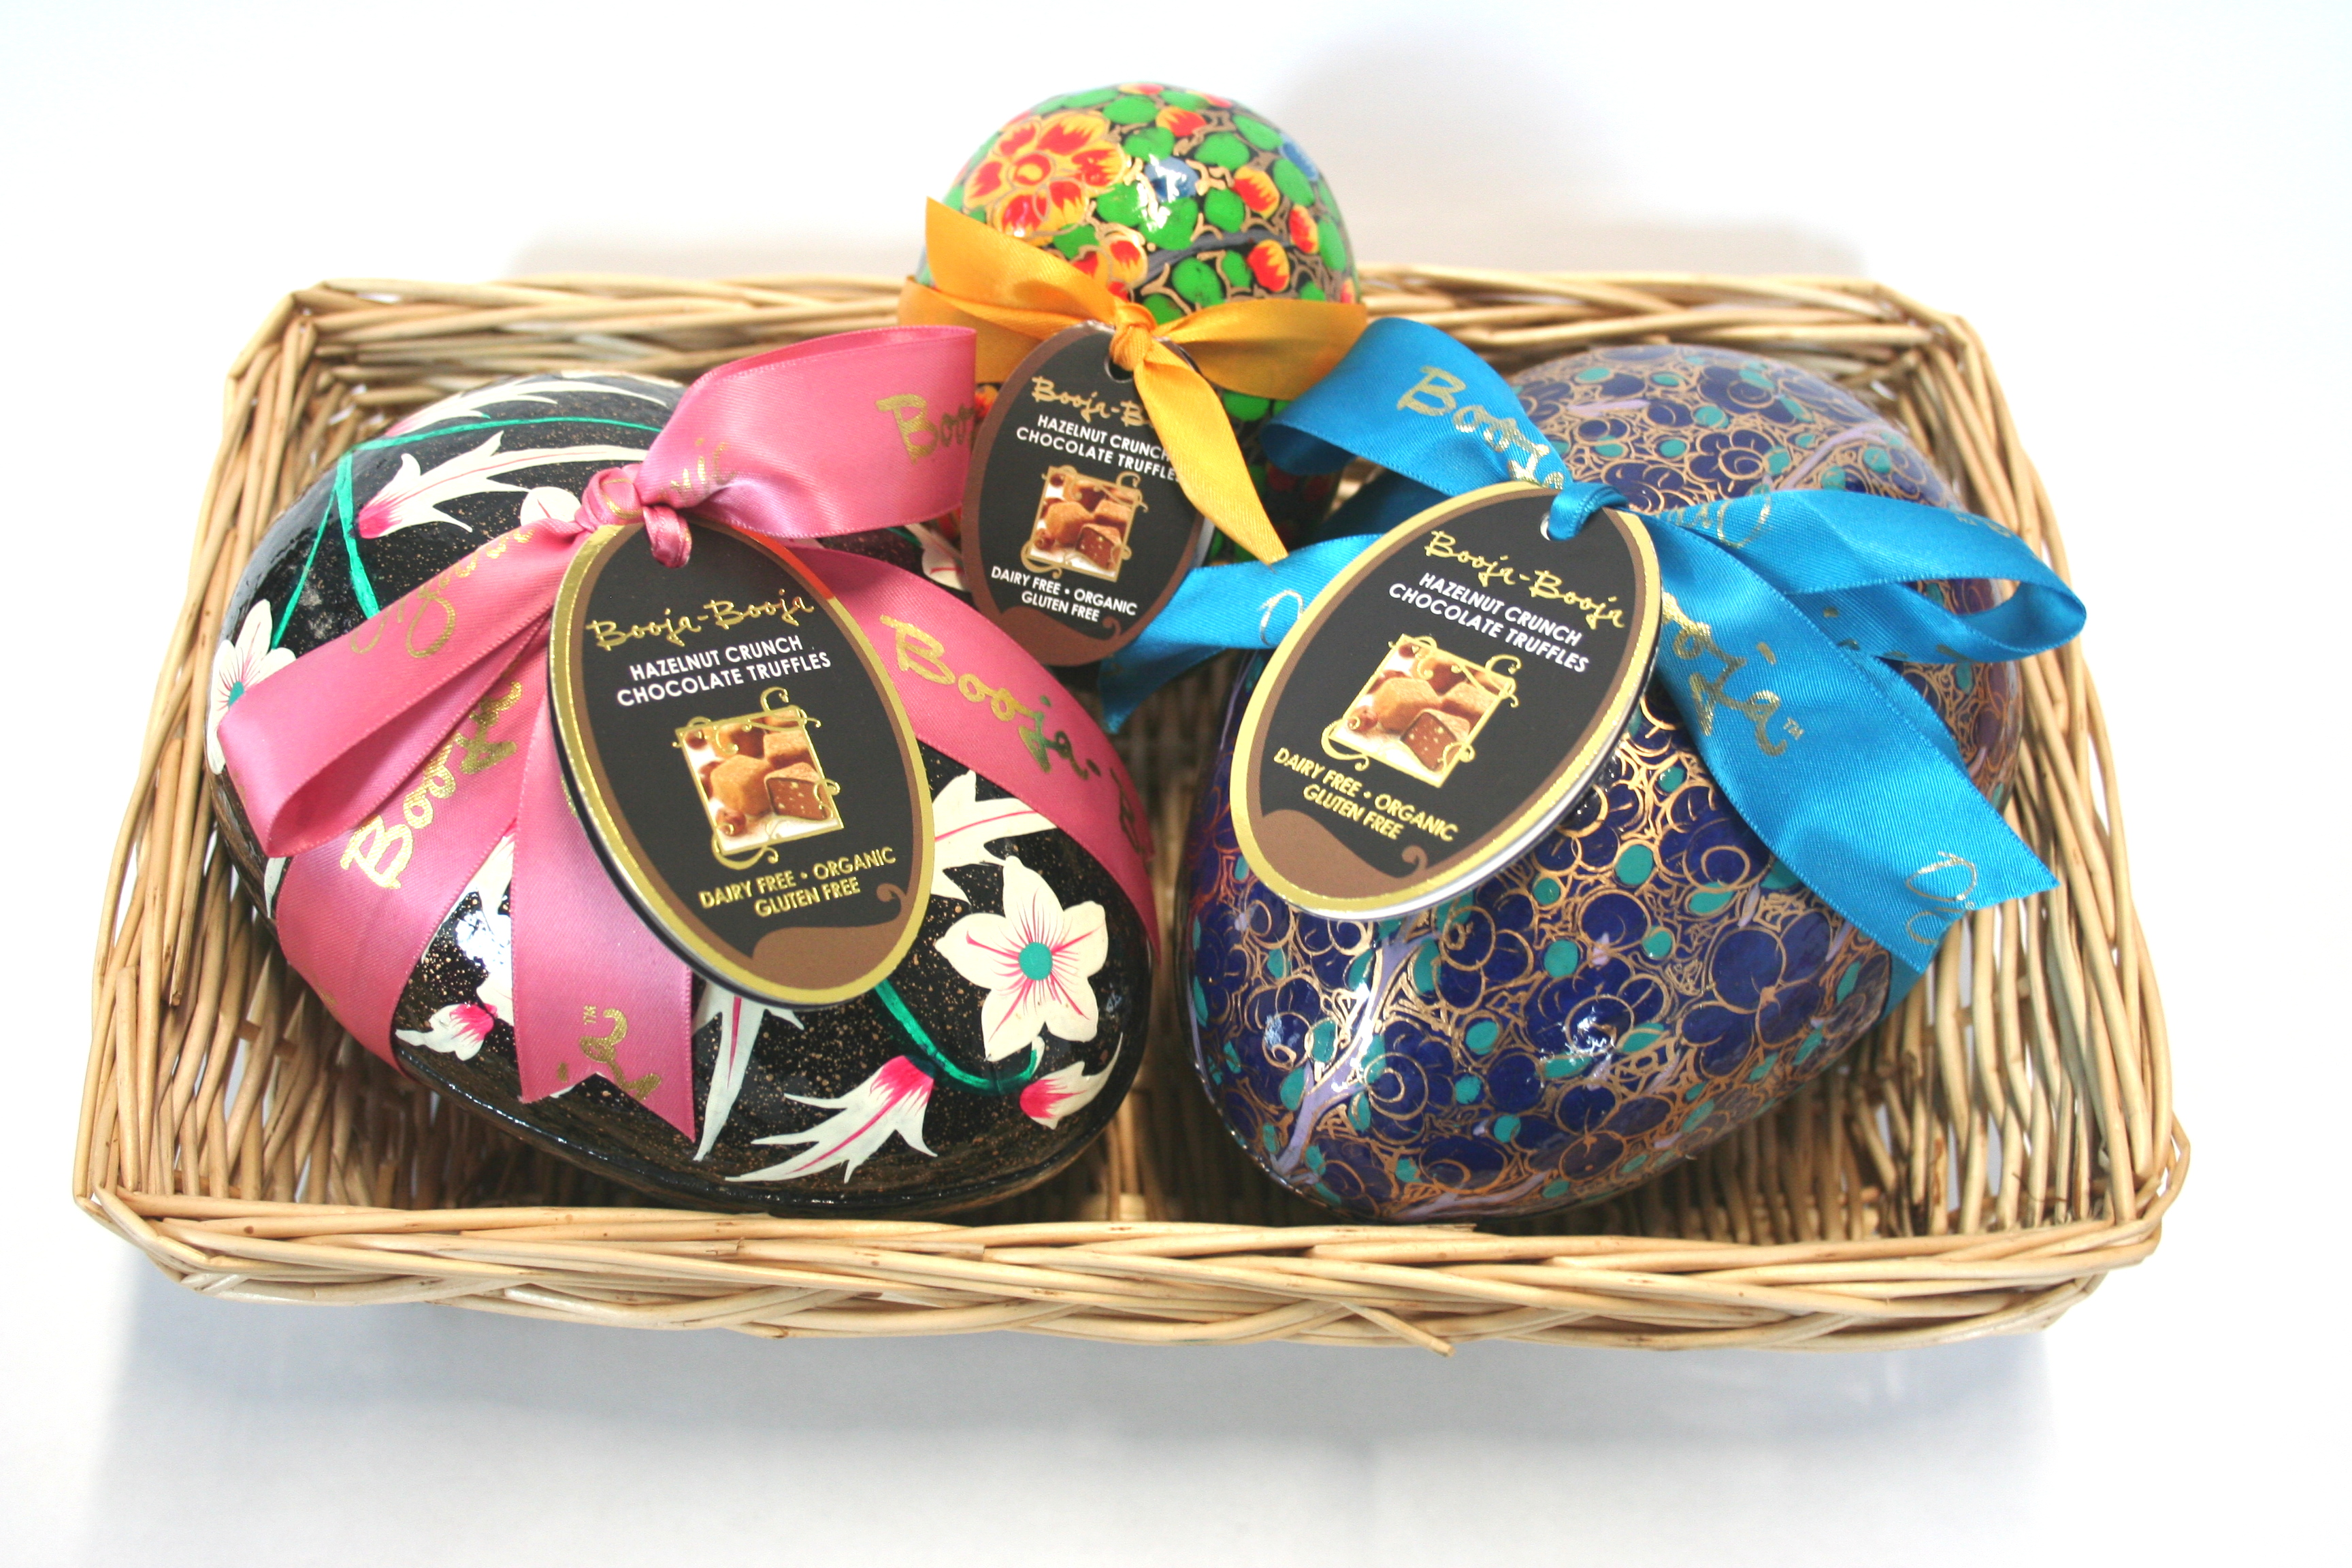 Hamper goodnessdirect blog healthy free from eco organic booja booja negle Images